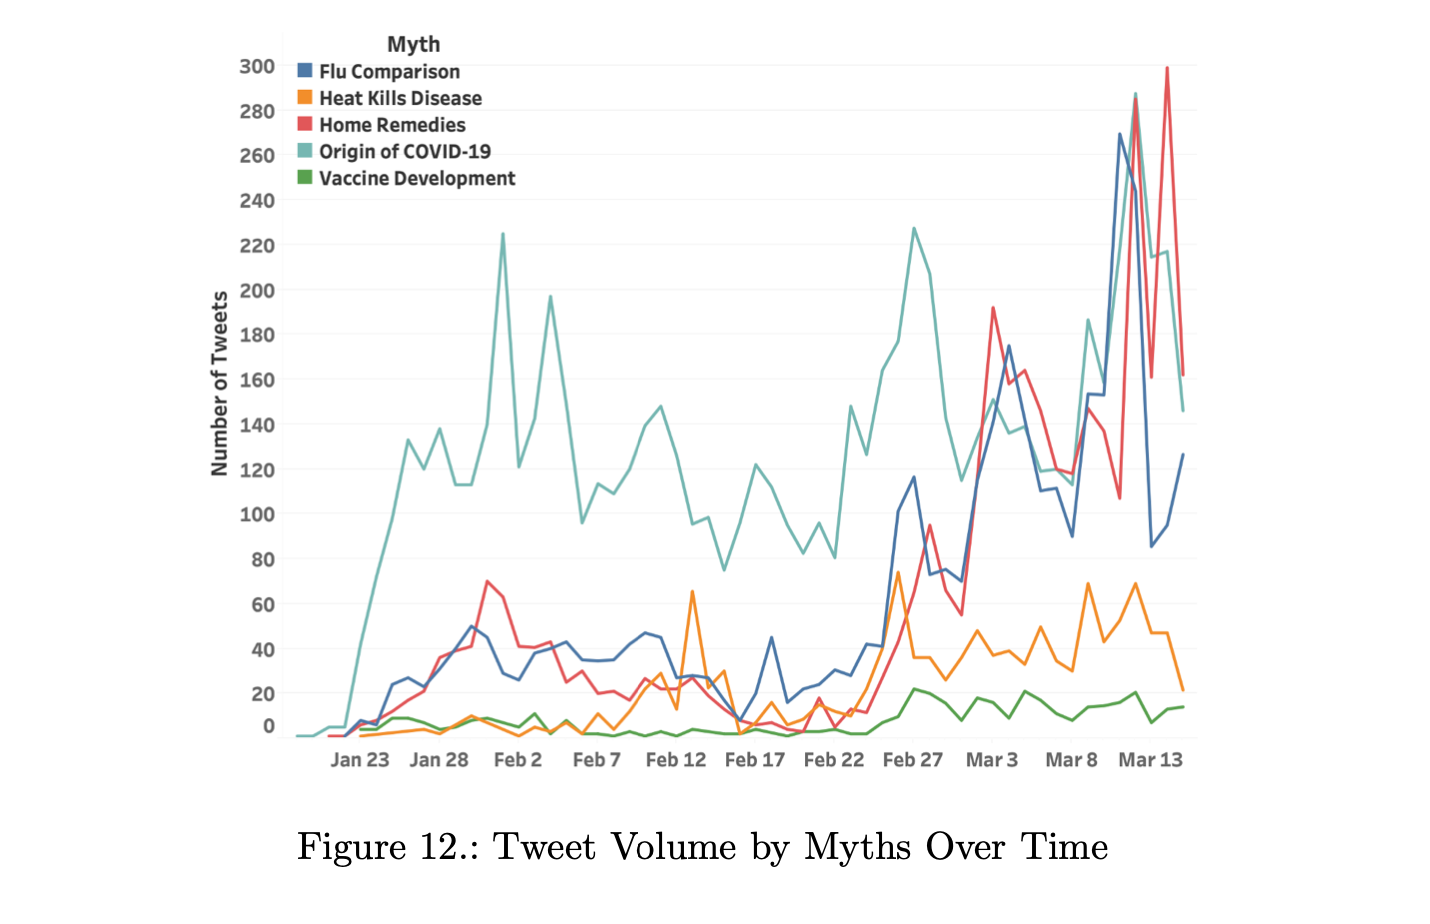 tweet volume by myths over time - number of tweets/date in 5 myth categories